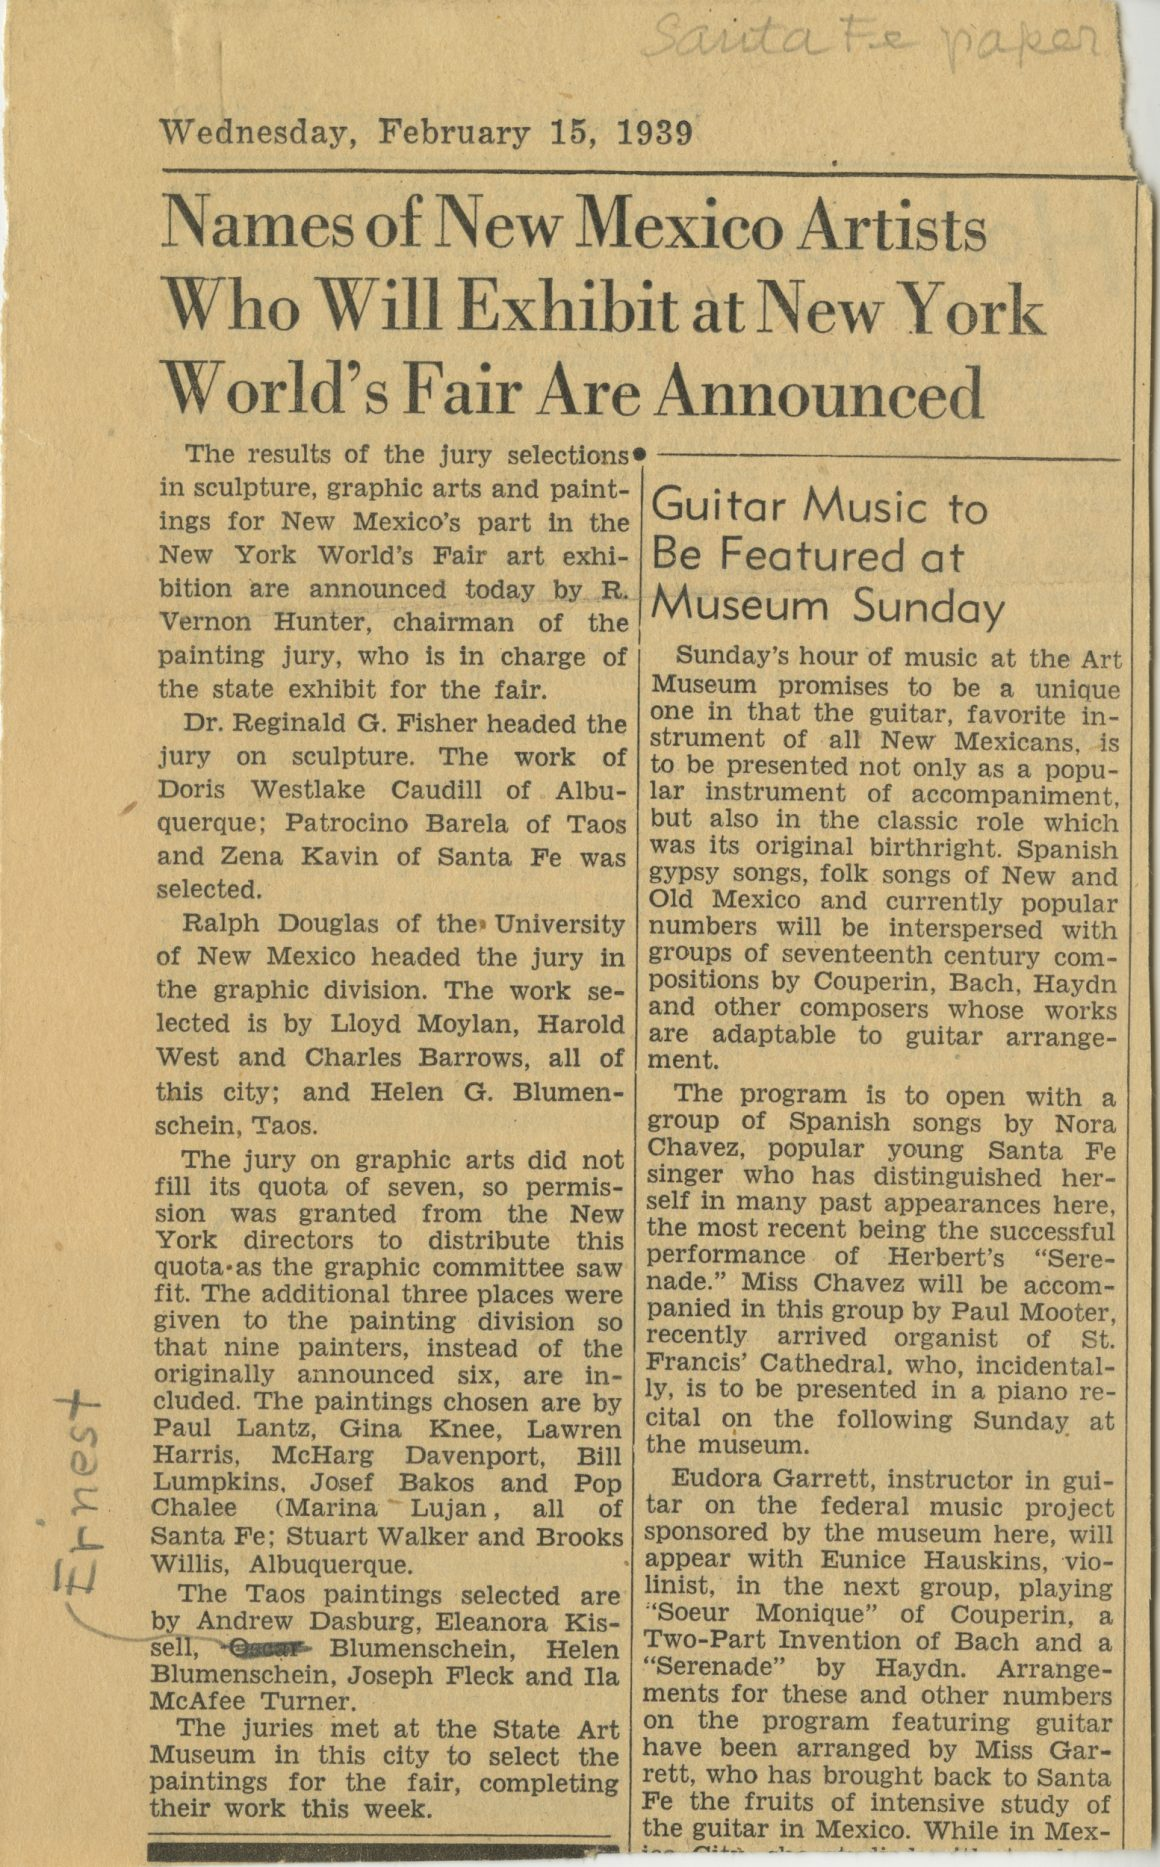 """1939 Article from the Santa Fe paper, """"Names of New Mexico Artists Who Will Exhibit at New York World's Fair Are Announced"""""""